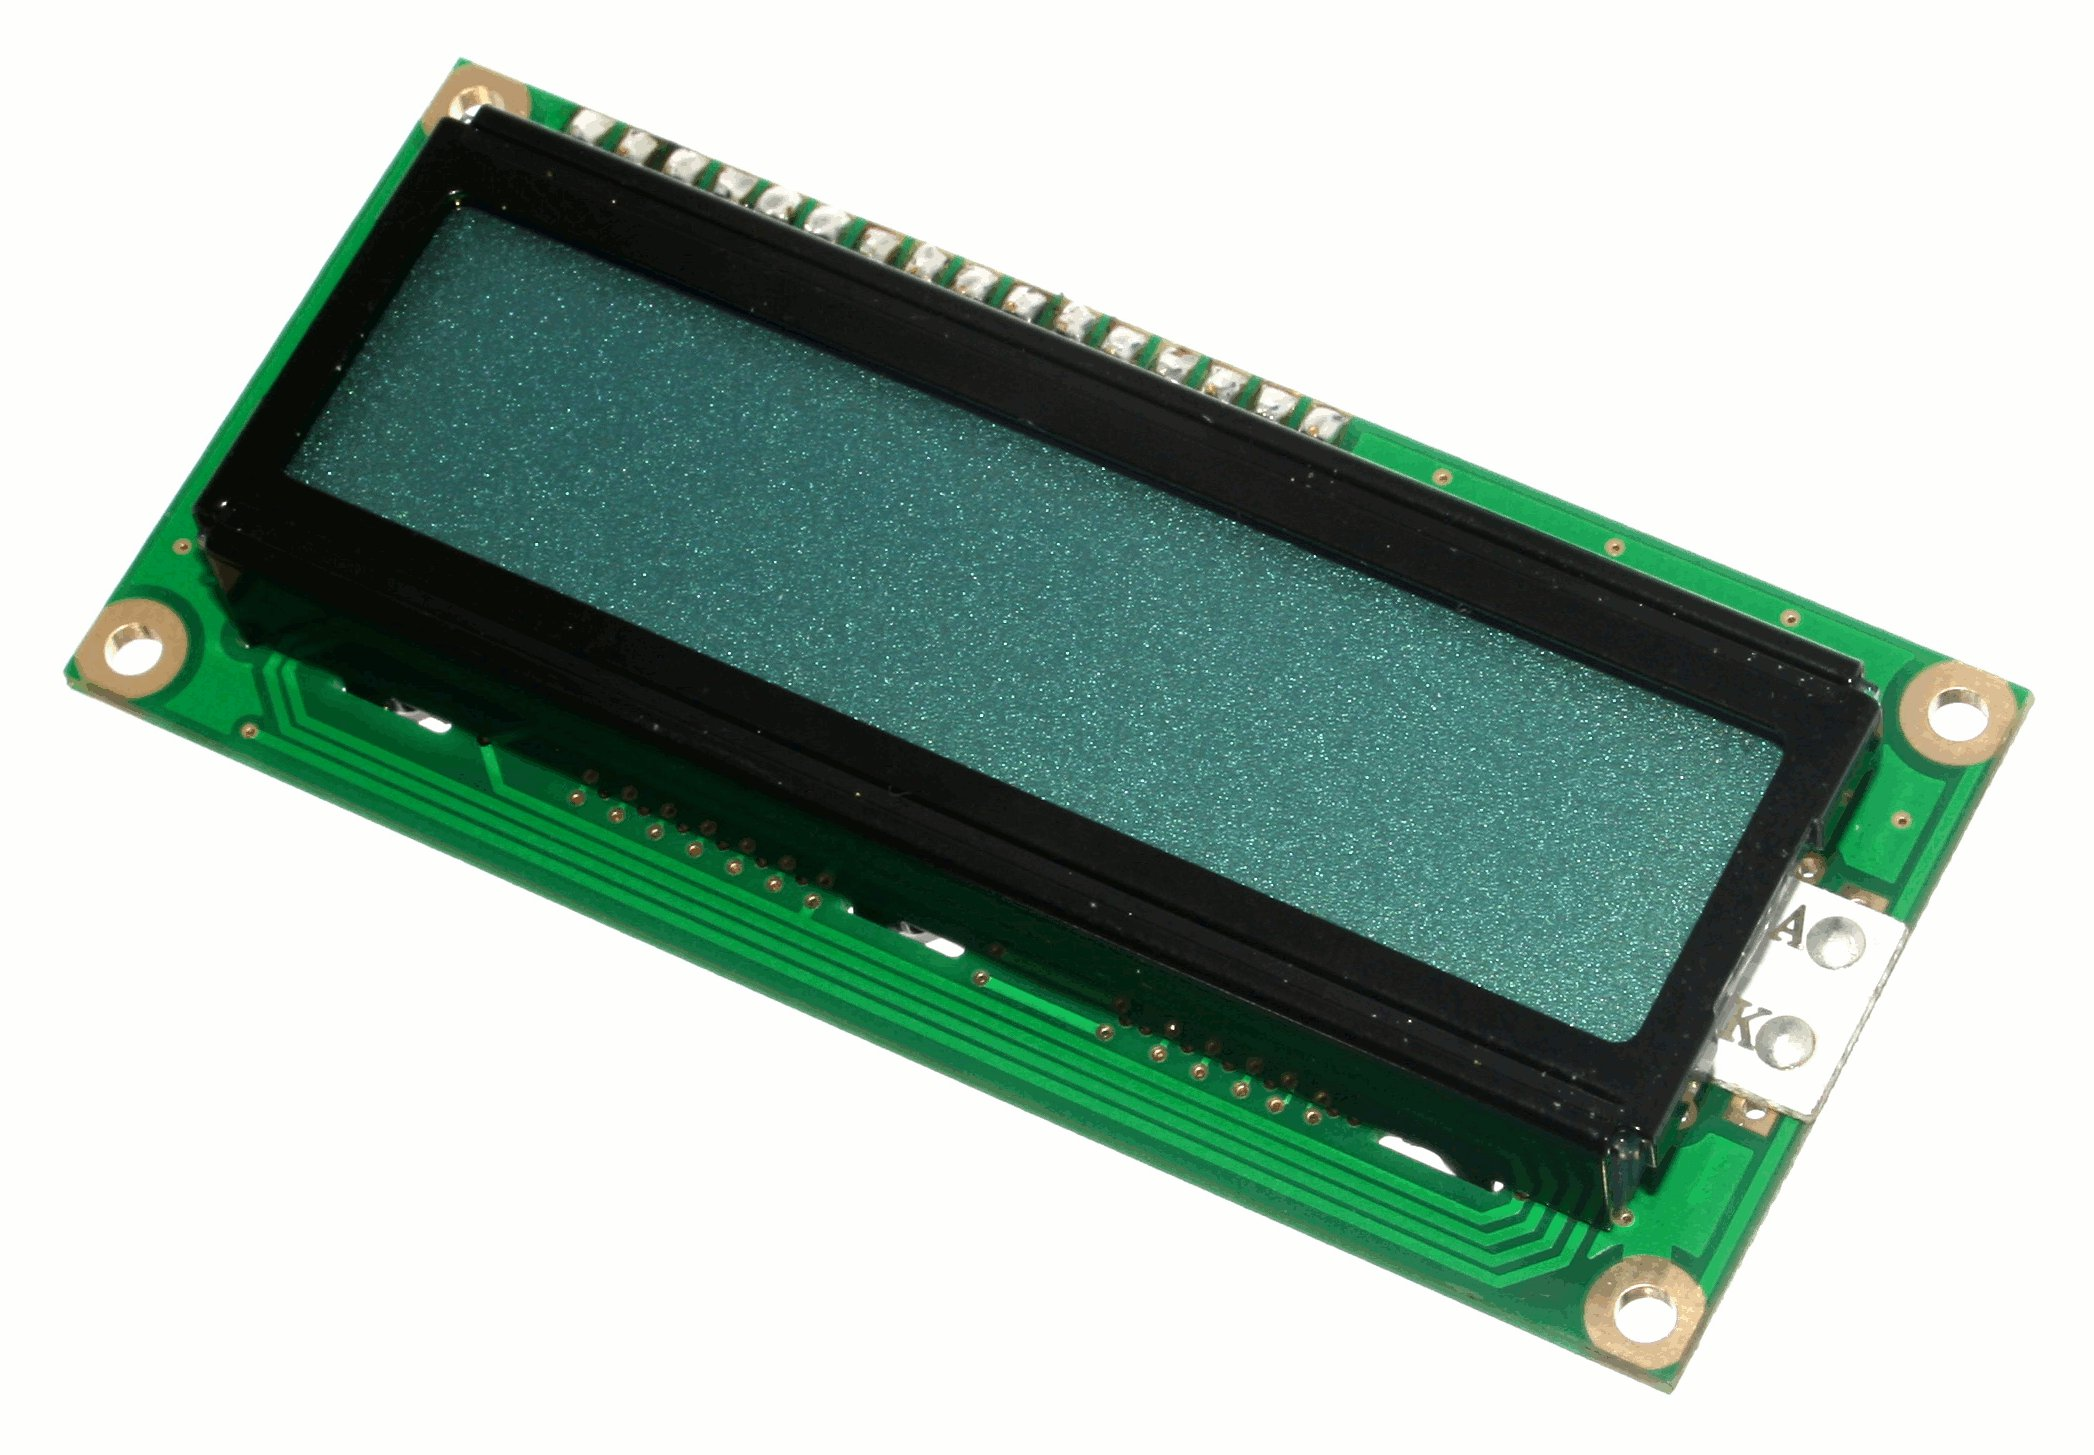 File 16x2 LCD Display  cropped on arduino pin diagram